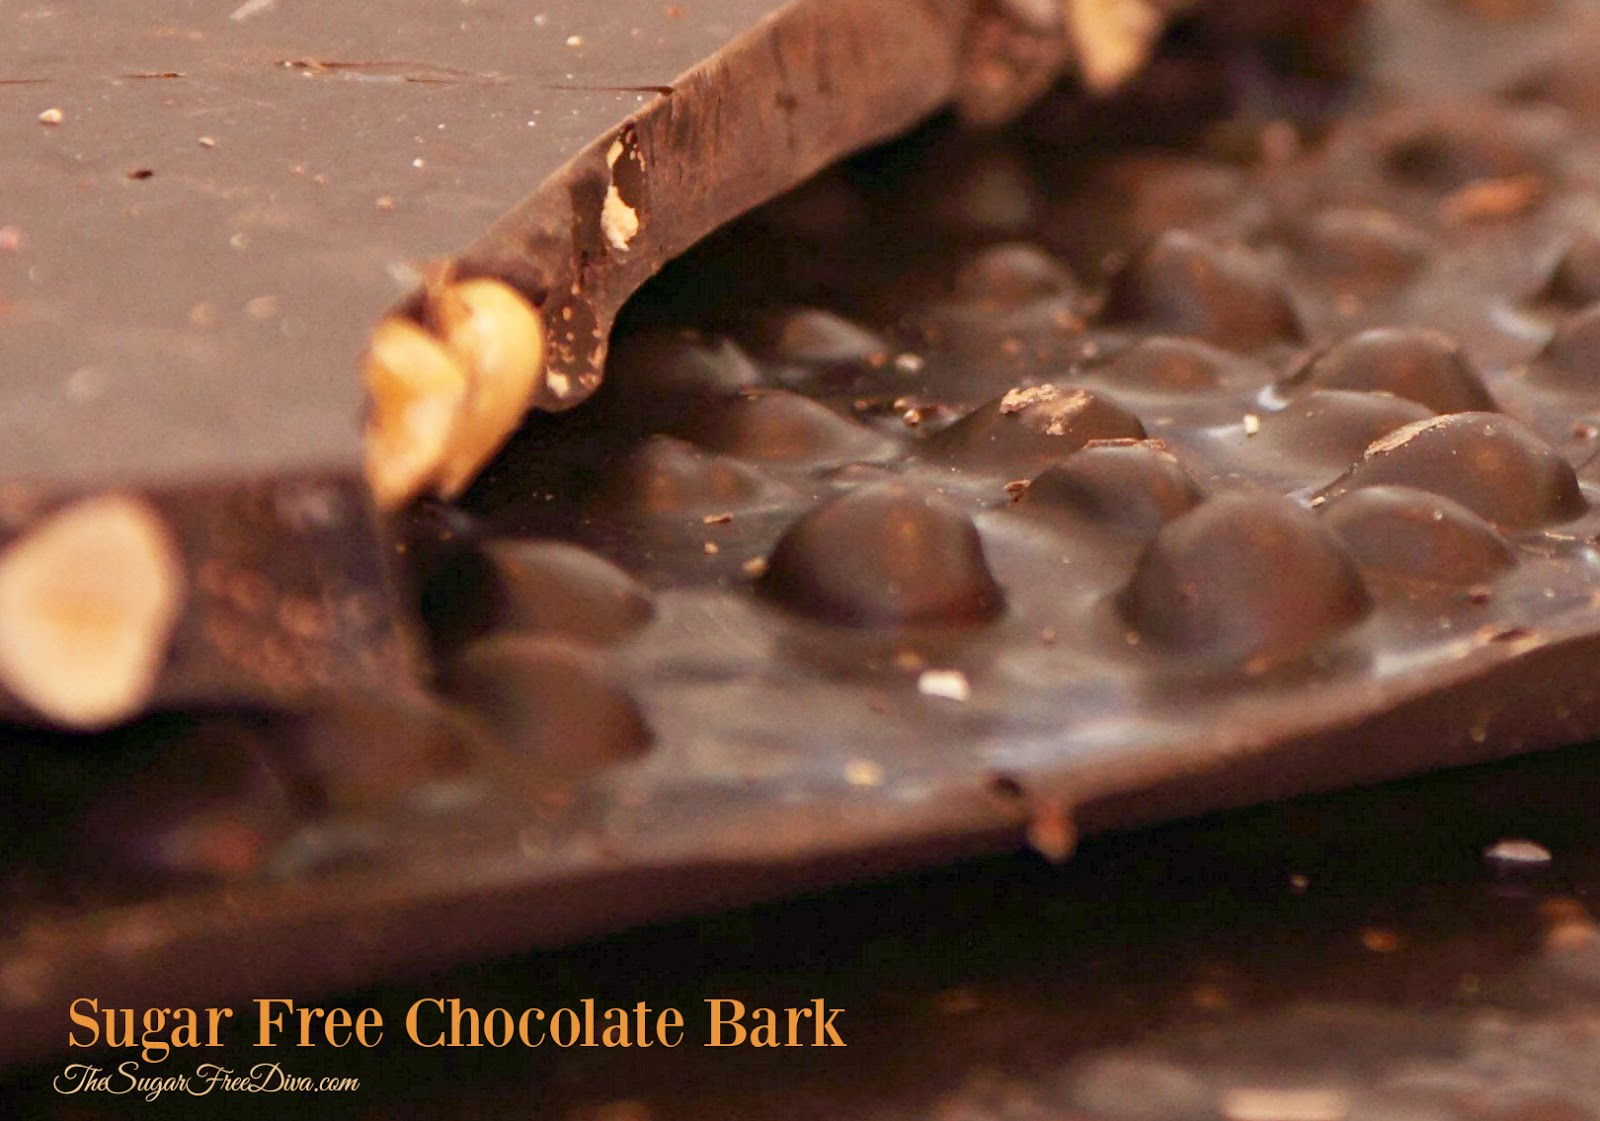 Sugar Free Chocolate Bark